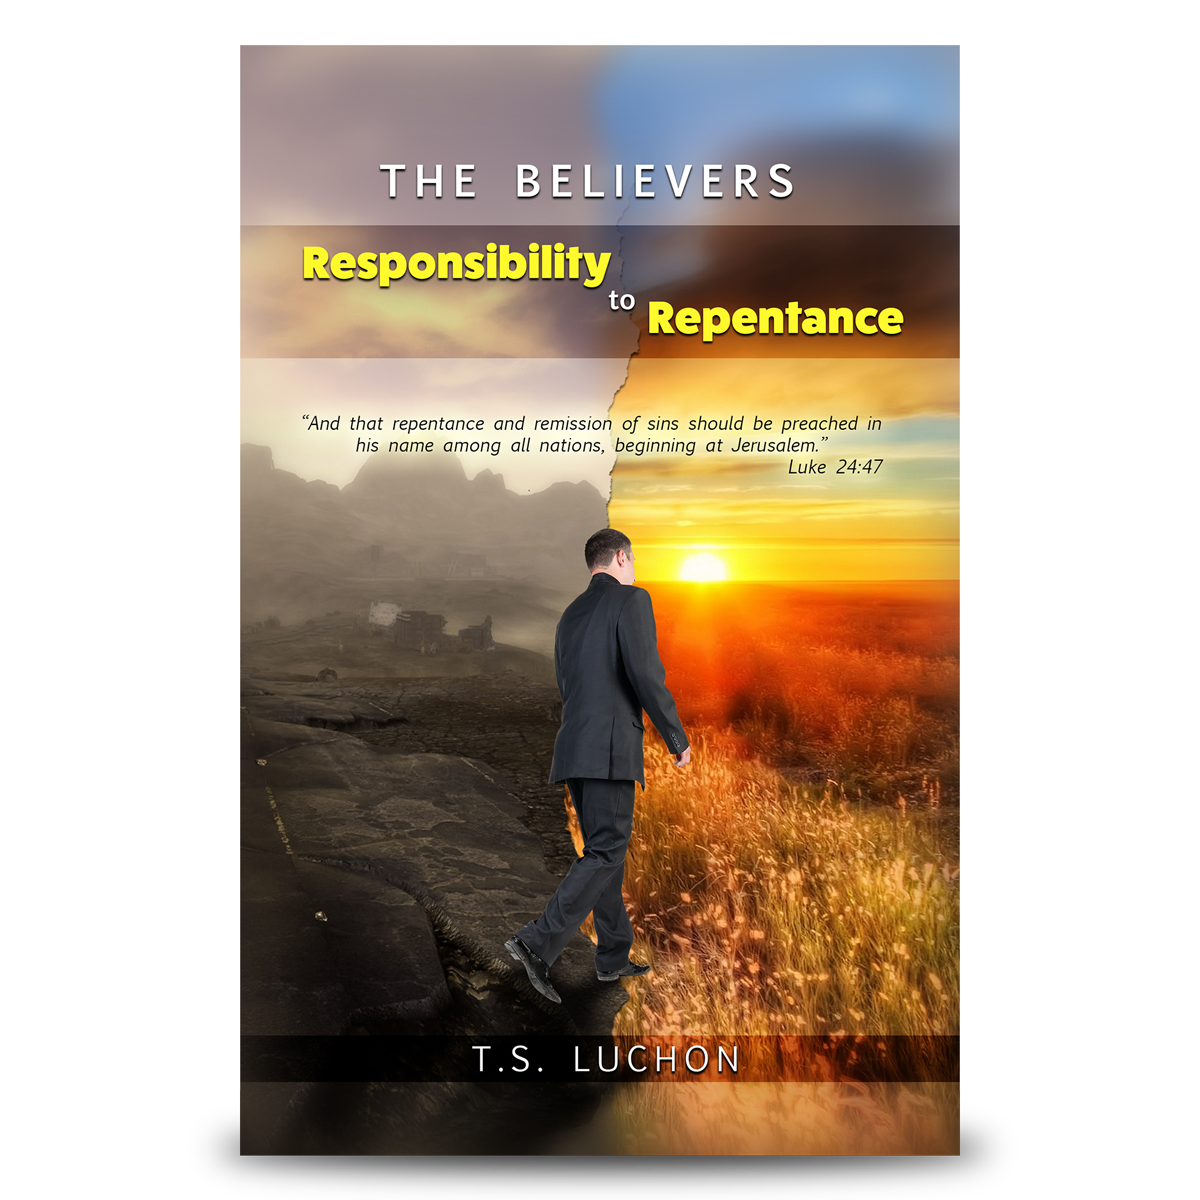 The Believer's Responsibility To Repentance